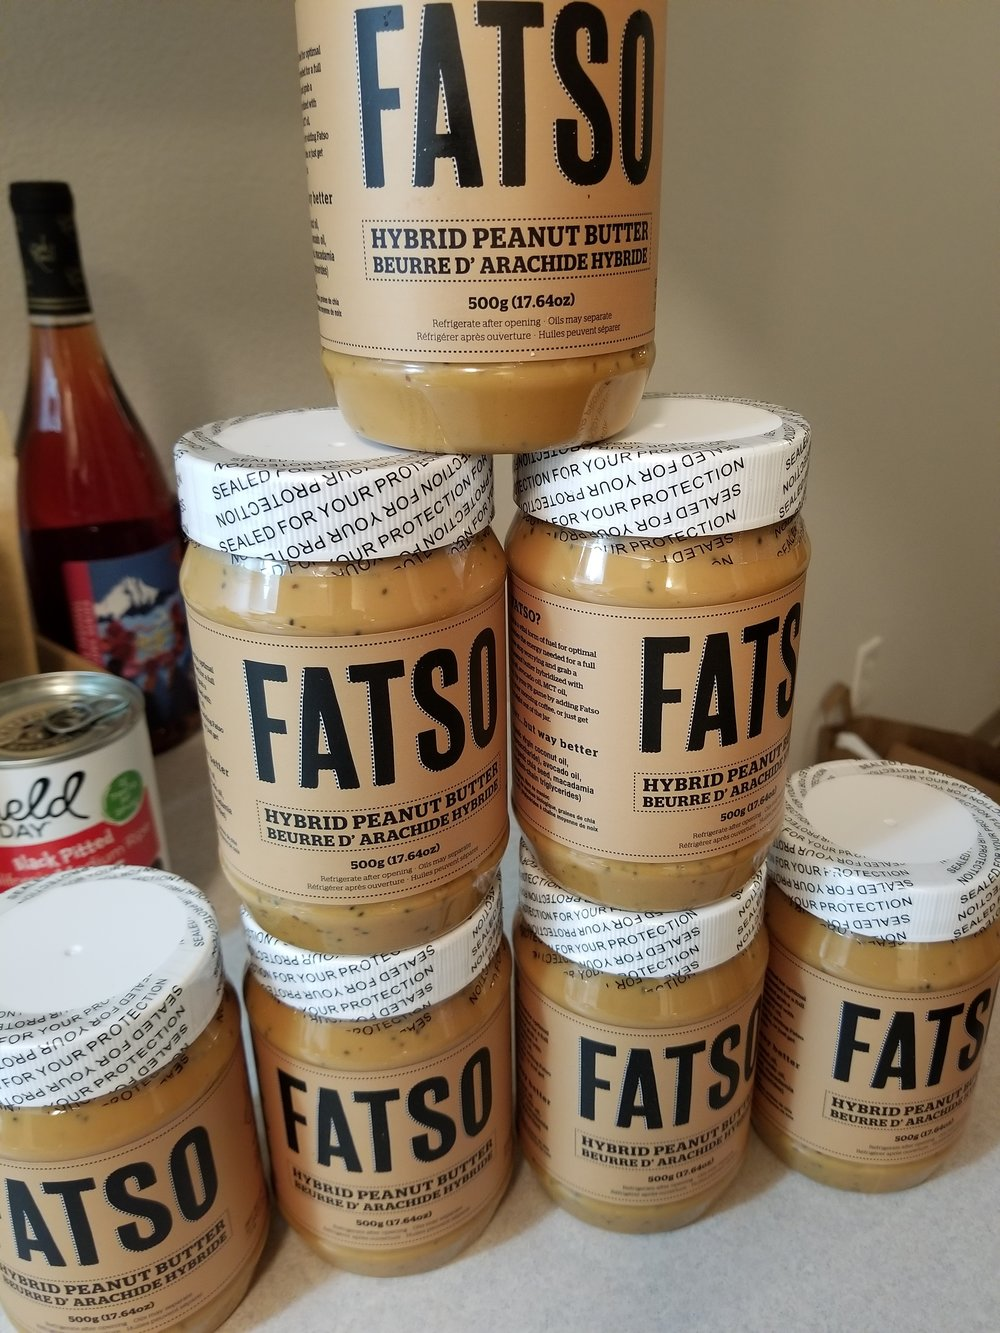 I discovered this peanut butter brand in Victoria, British Columbia. All loaded with healthy fats and chia seeds - no sugar added